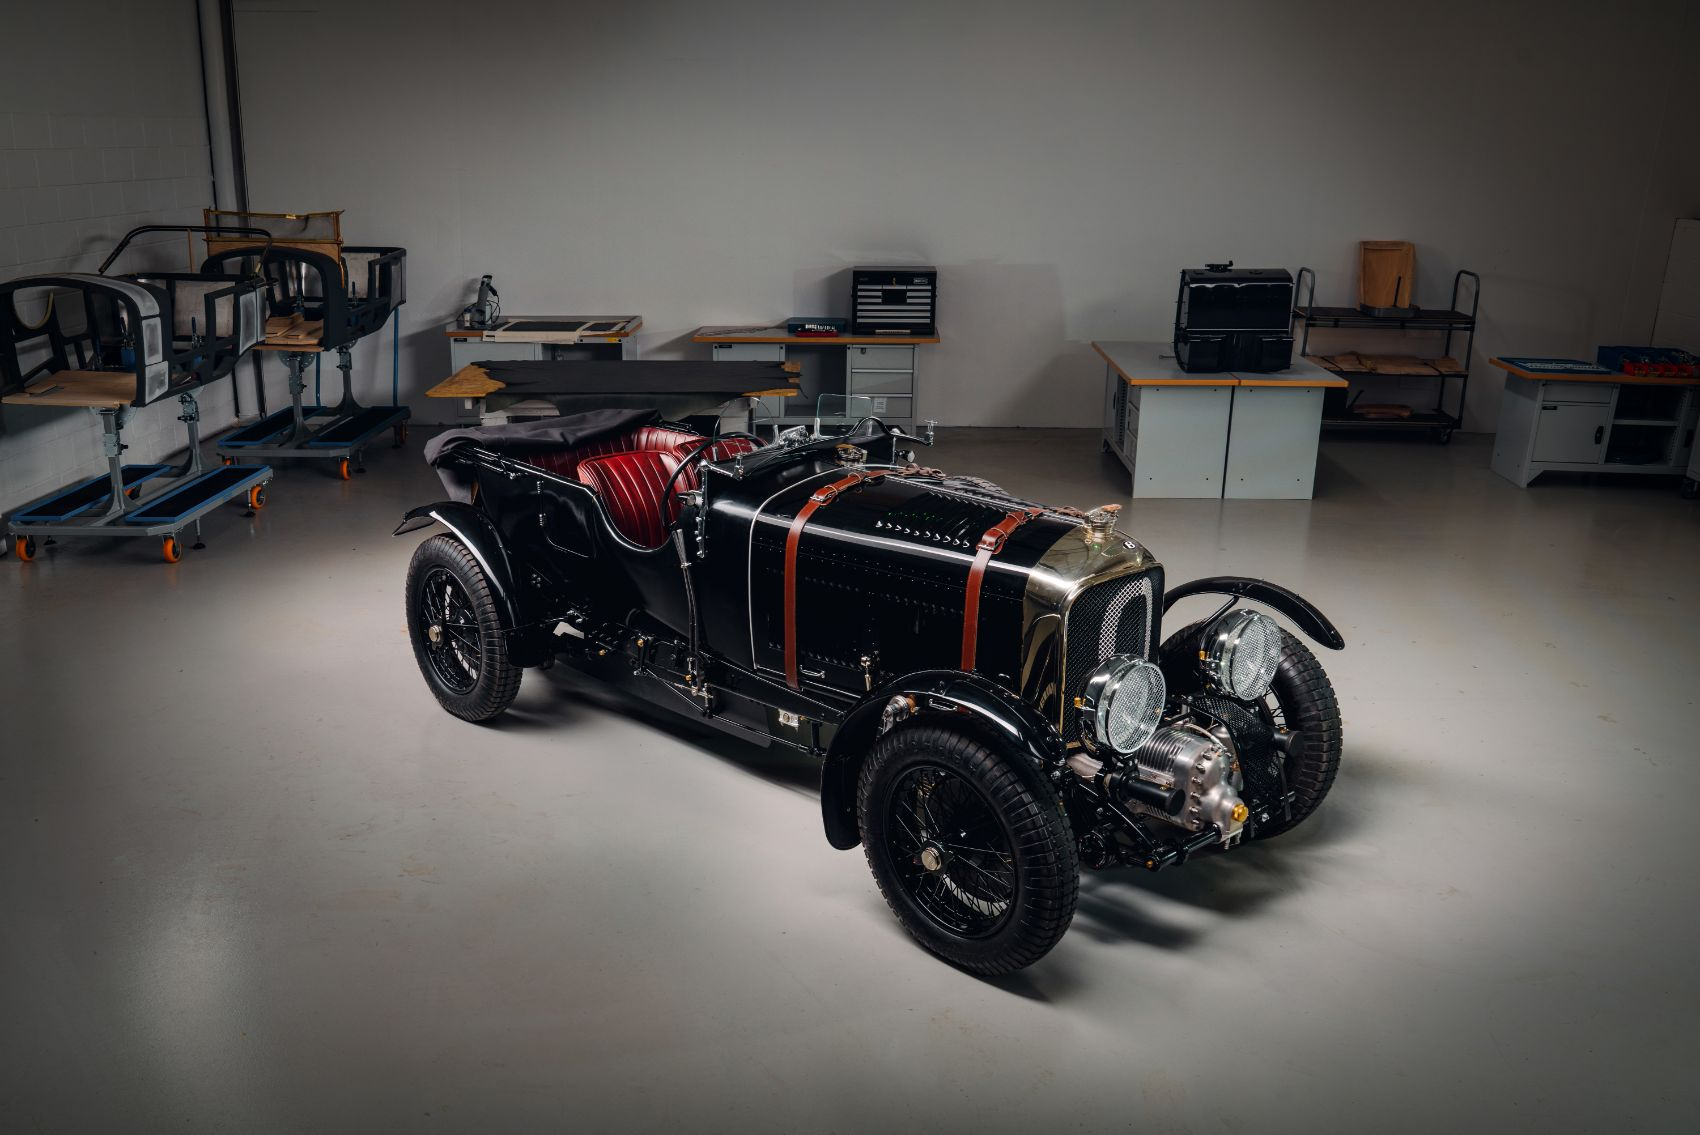 Enter Car Zero: First Bentley Blower in 90 Years is Also World's First Pre-War Continuation Series